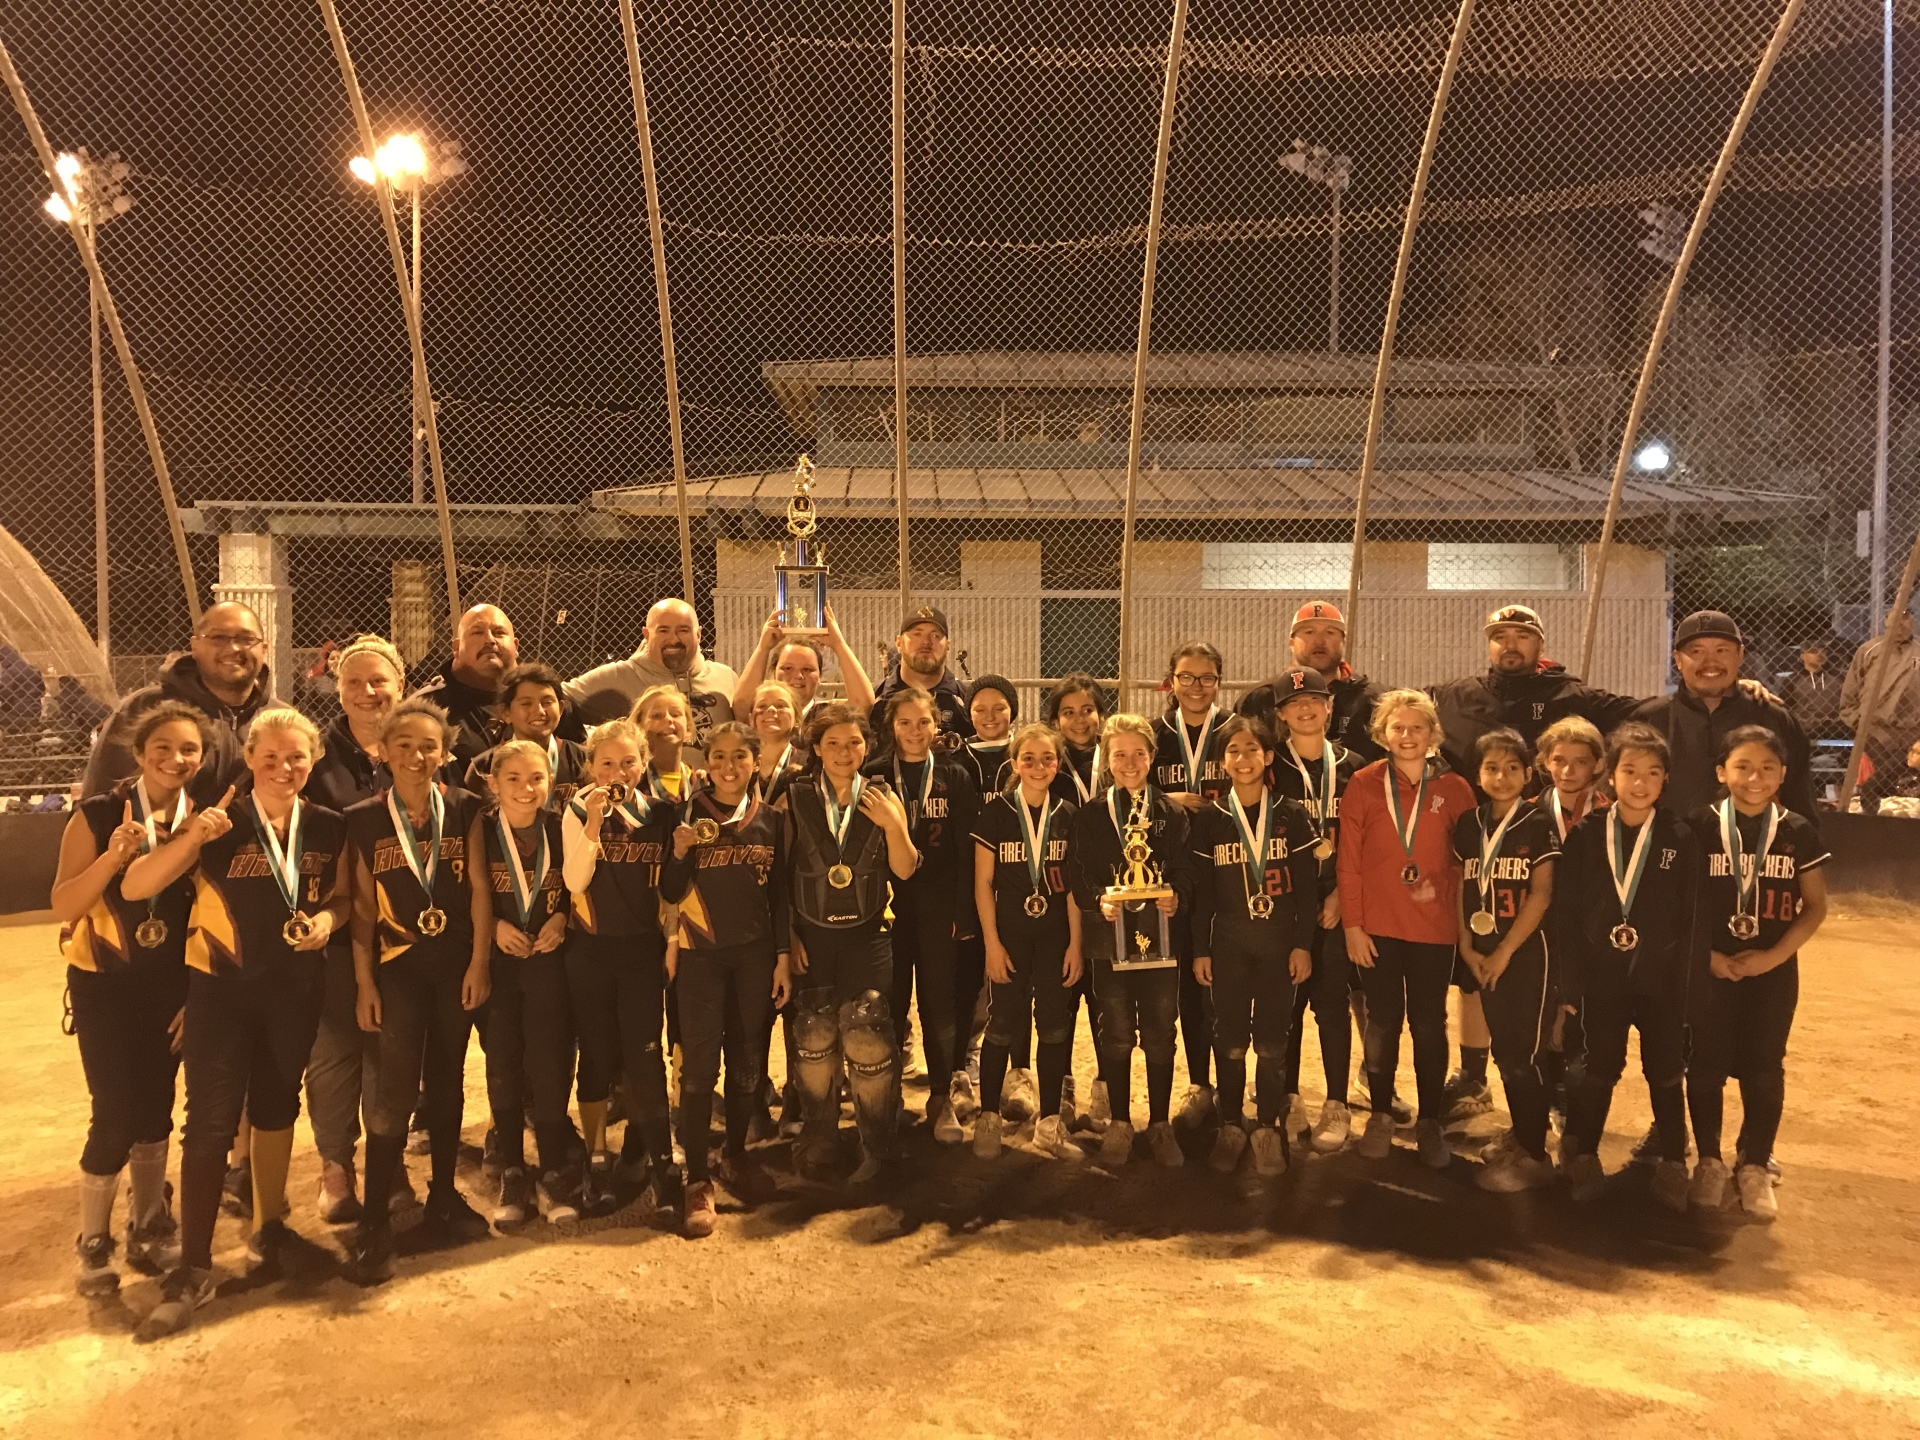 1st Place 10u - So Cal Havoc and Runner Up Firecrackers - Sabo